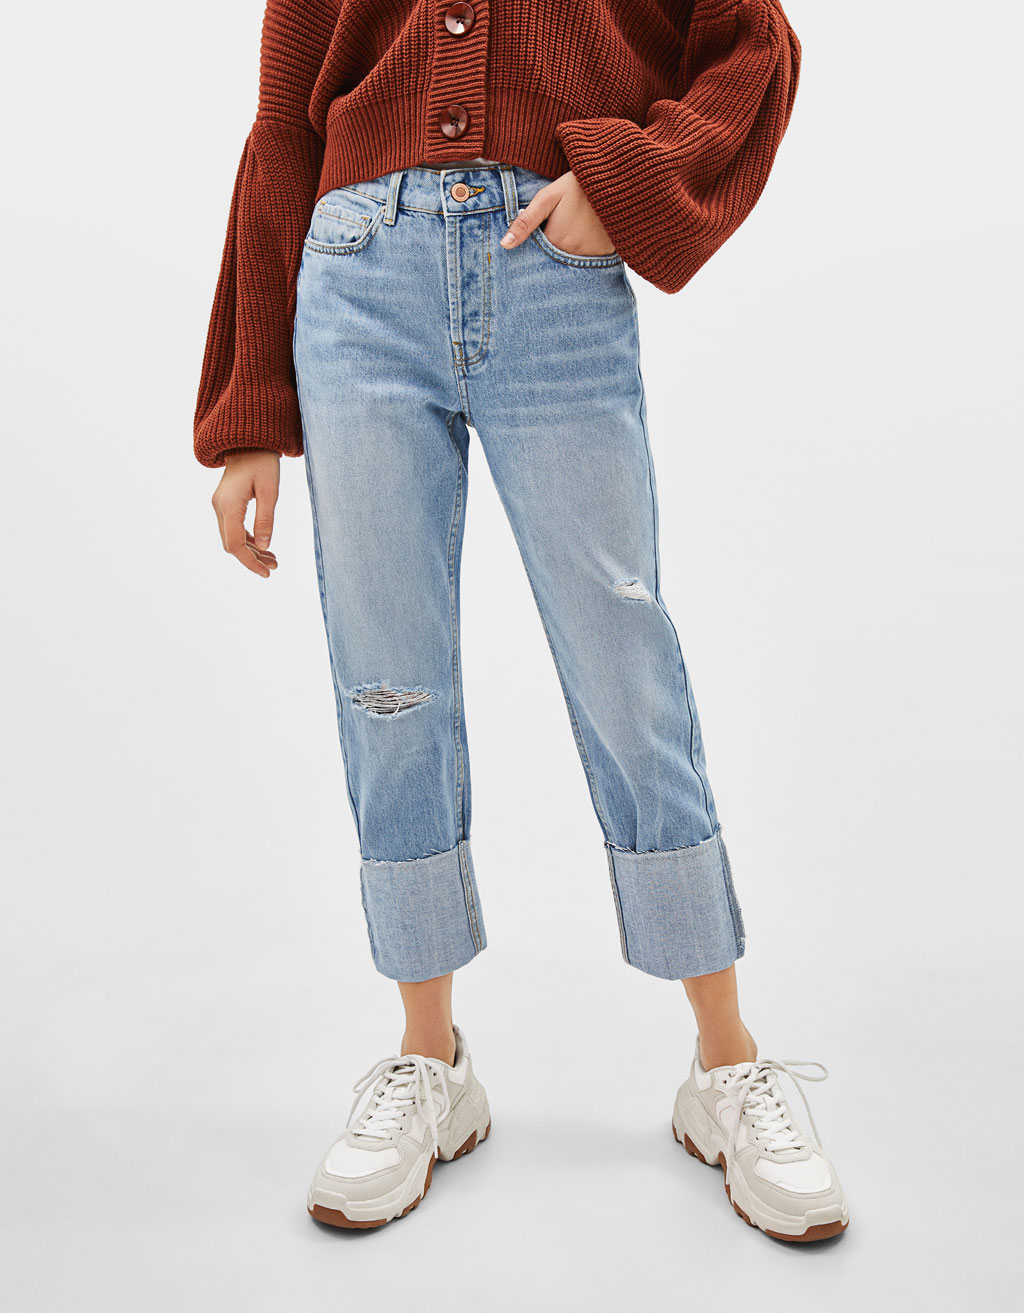 Straight fit jeans with turn-up hems